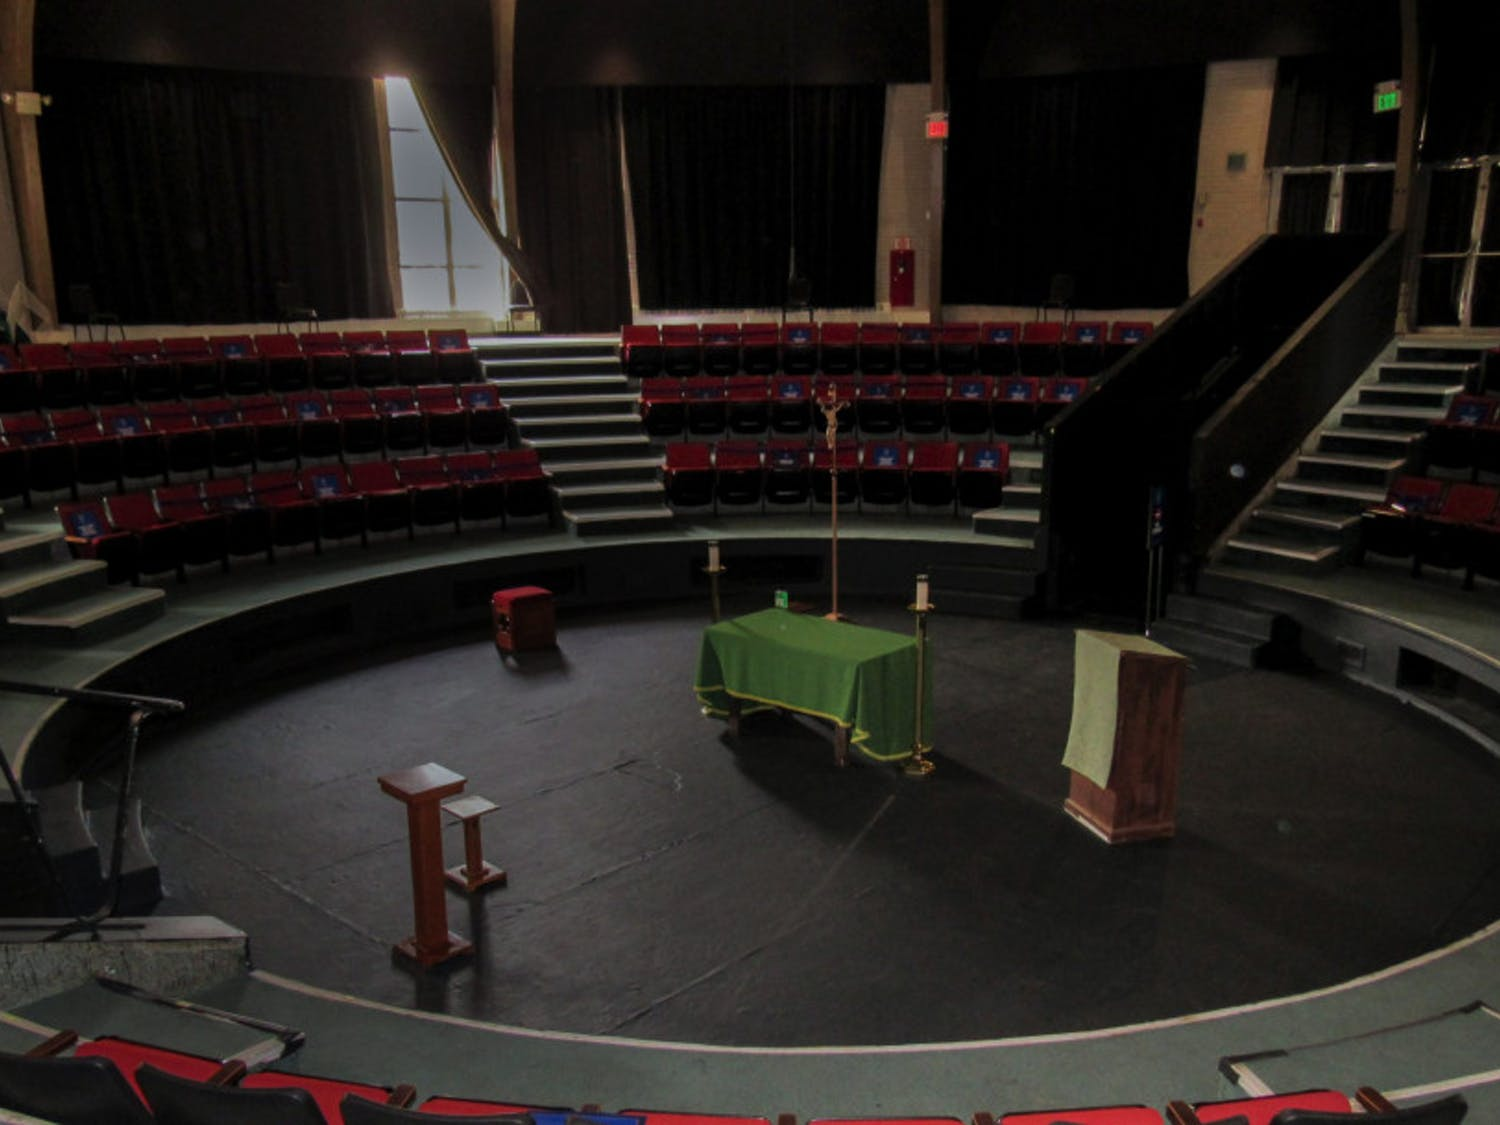 Theater-in-the-Round-Phot-by-Julia-Gallo-scaled